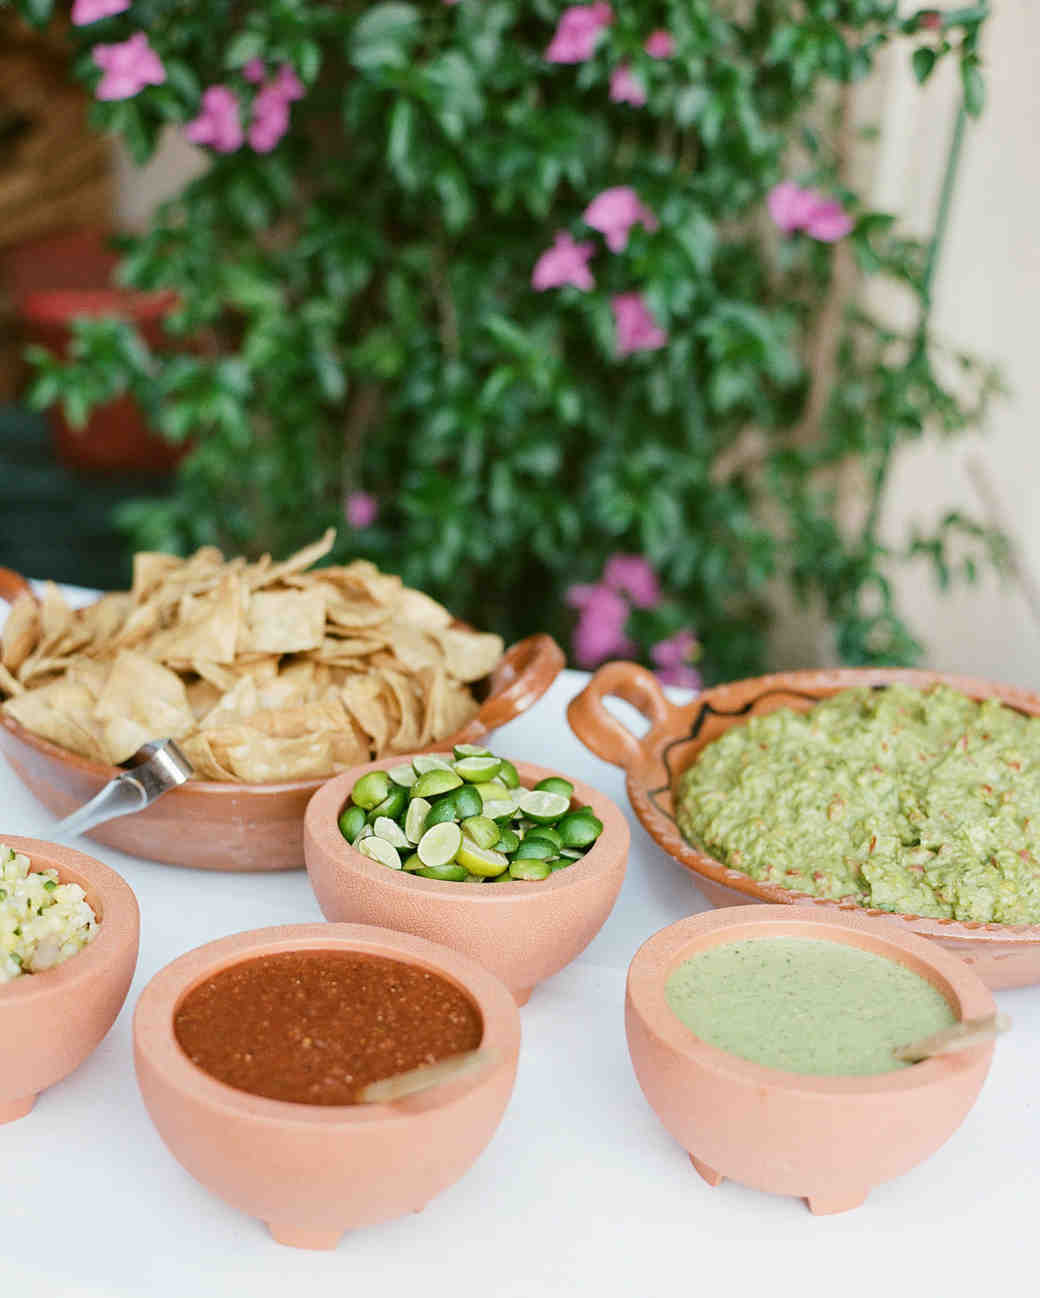 table with chips and salsa and guacamole